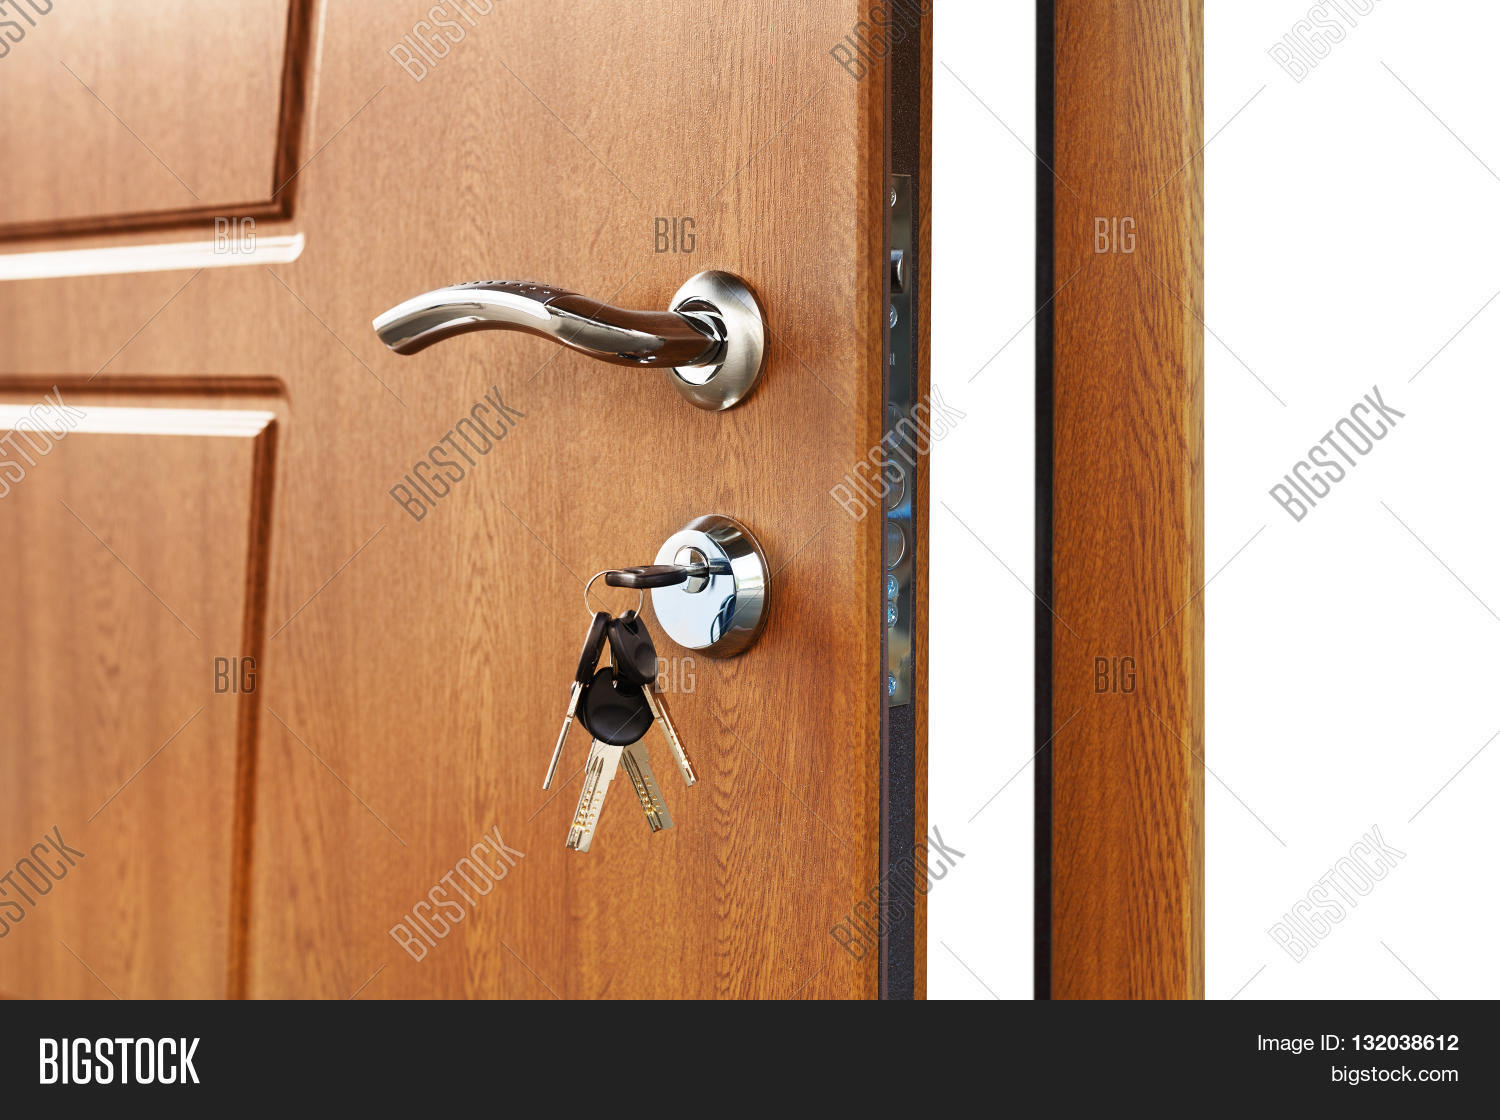 Open Door Handle. Door Lock With Keys. Brown Wooden Door